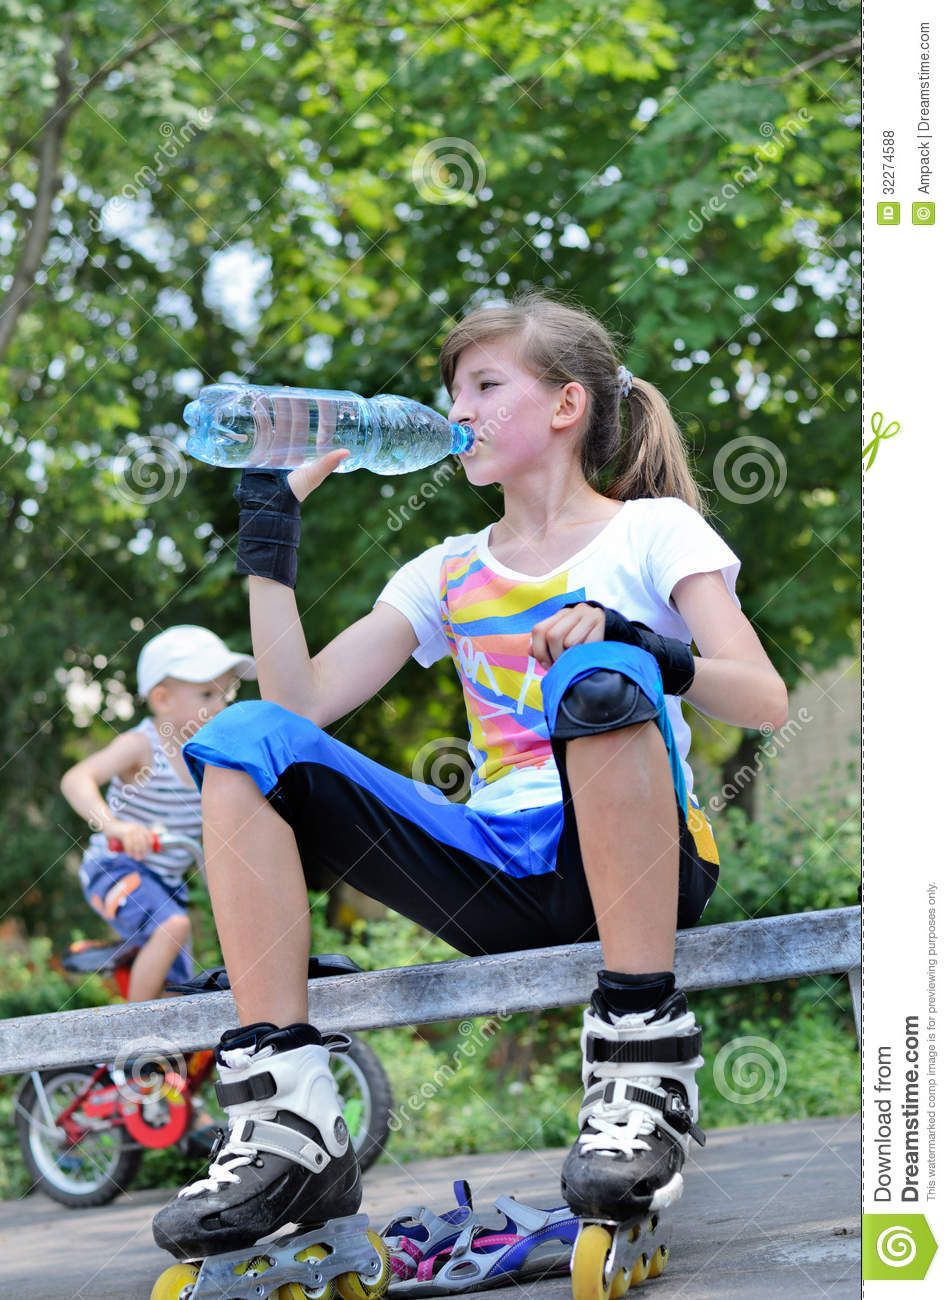 ... Drink While Roller Skating Royalty Free Stock Photos - Image: 32274588